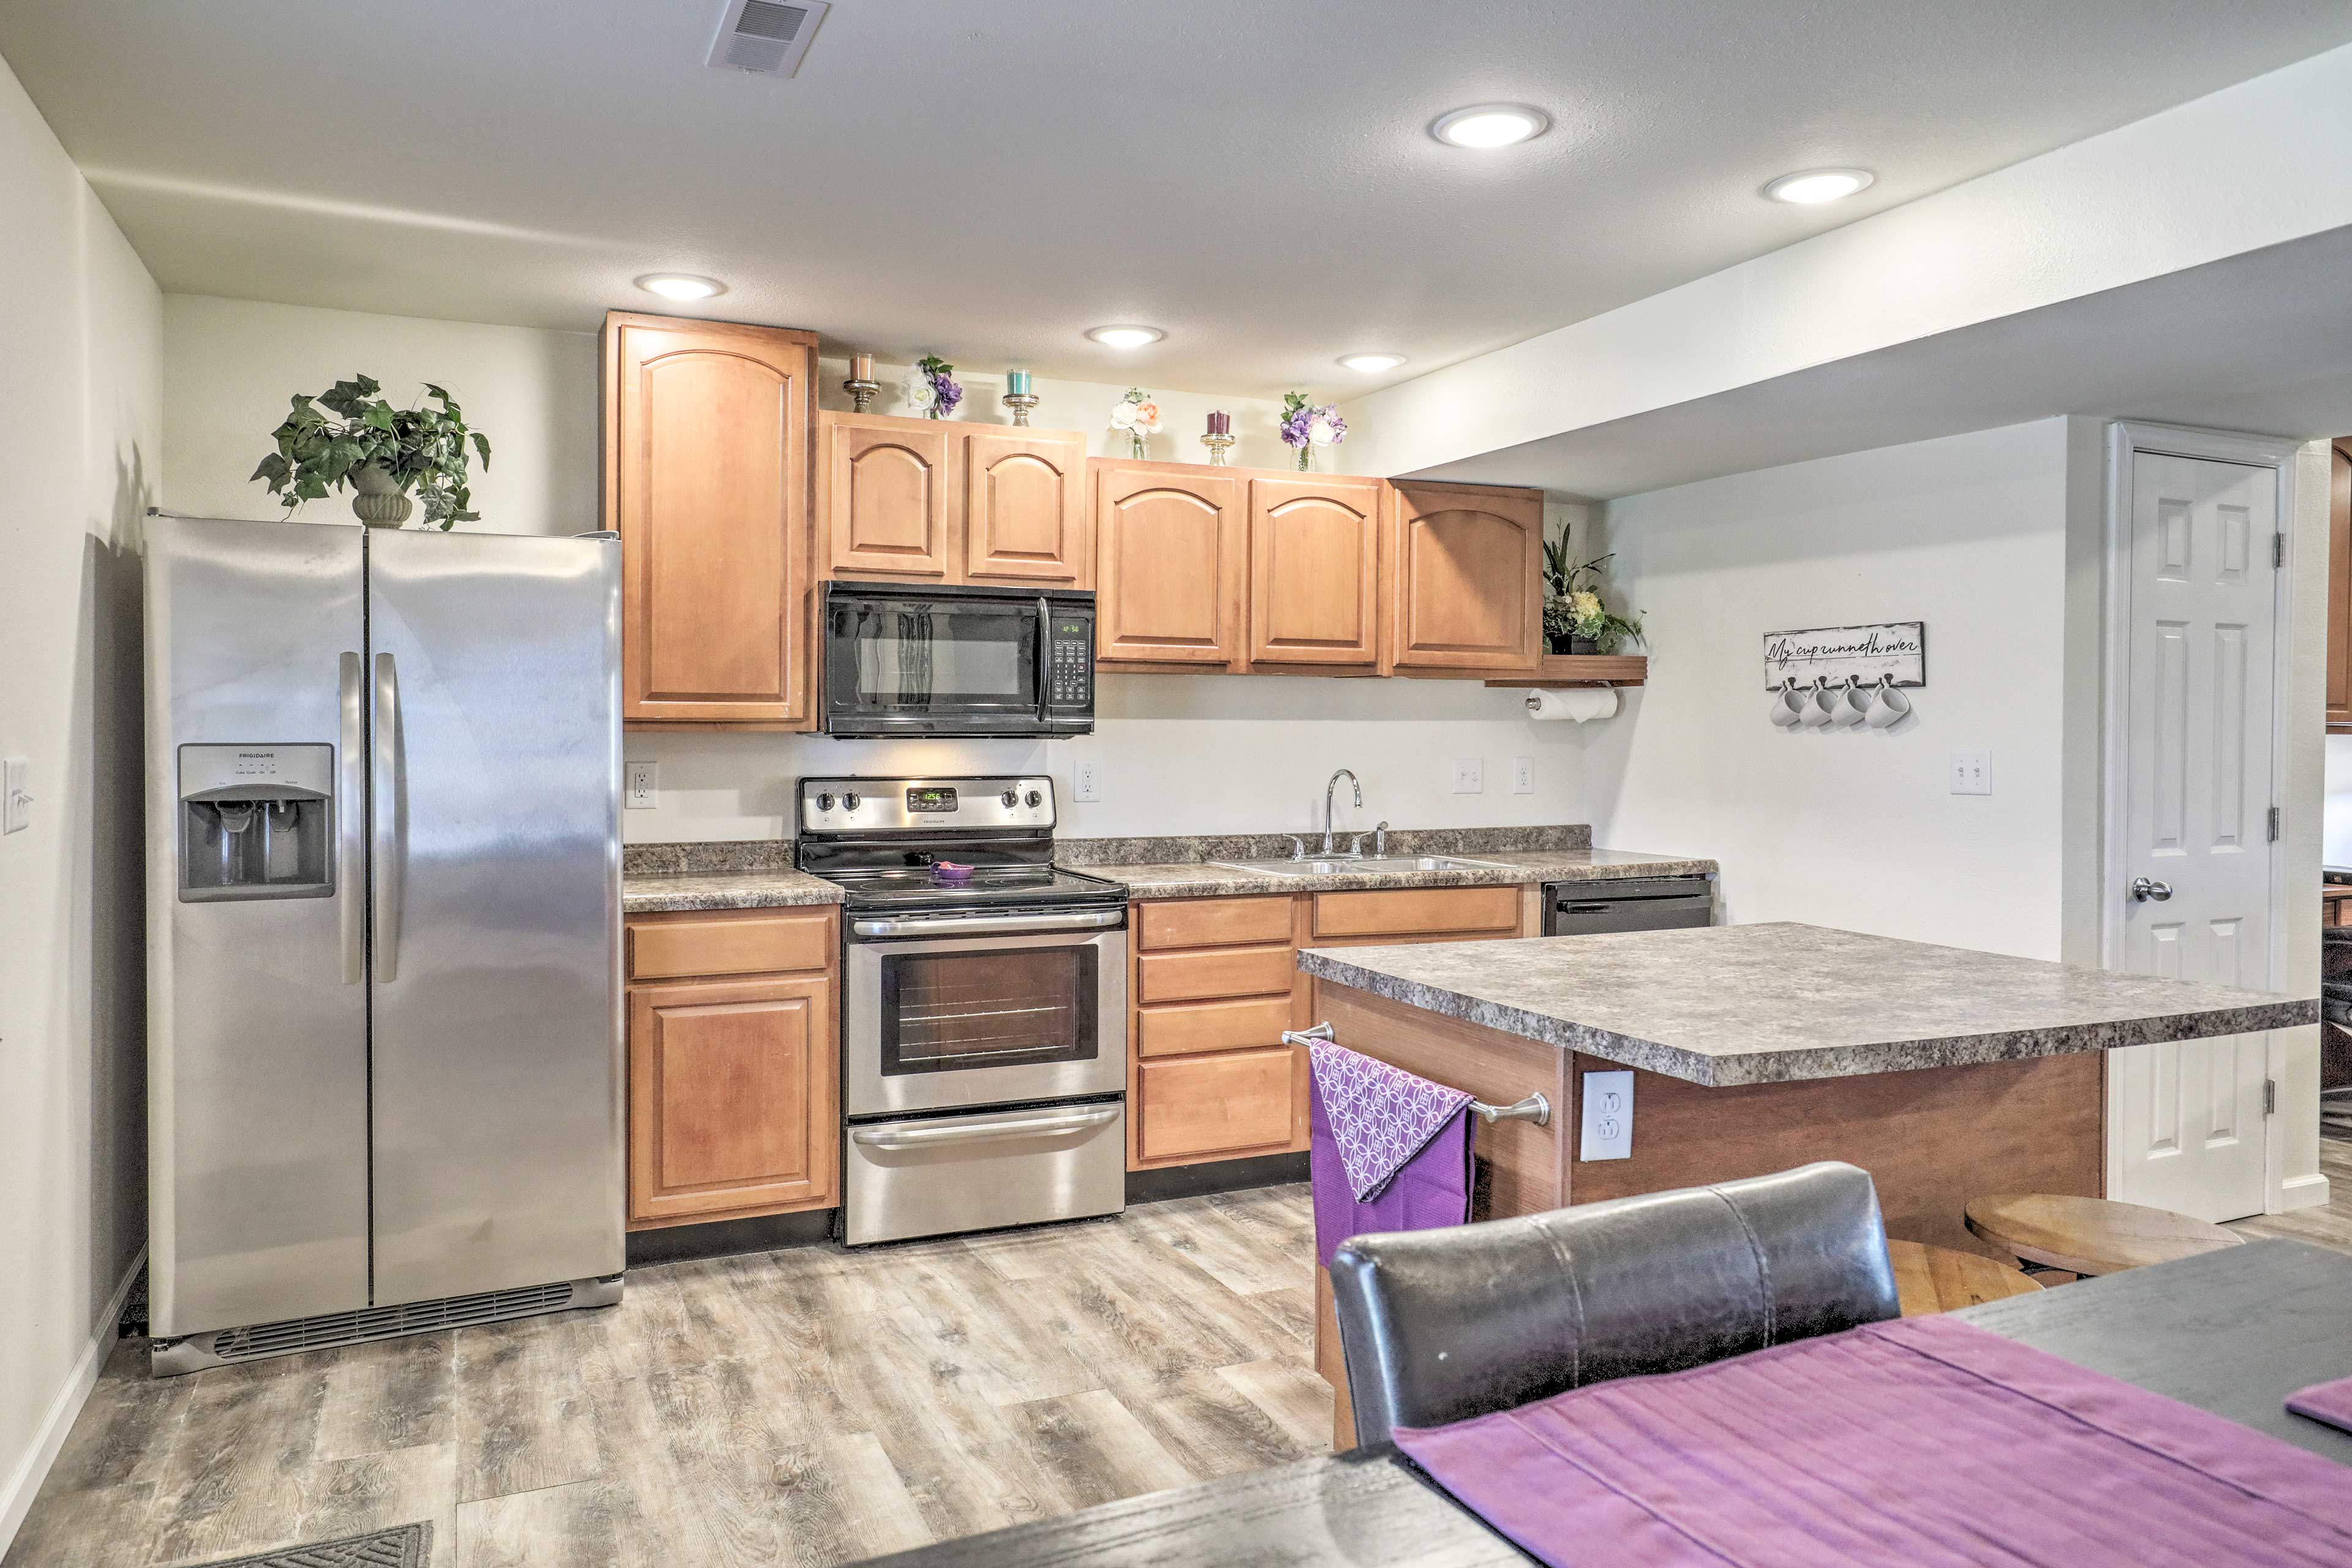 The kitchen is both fully equipped and spacious.